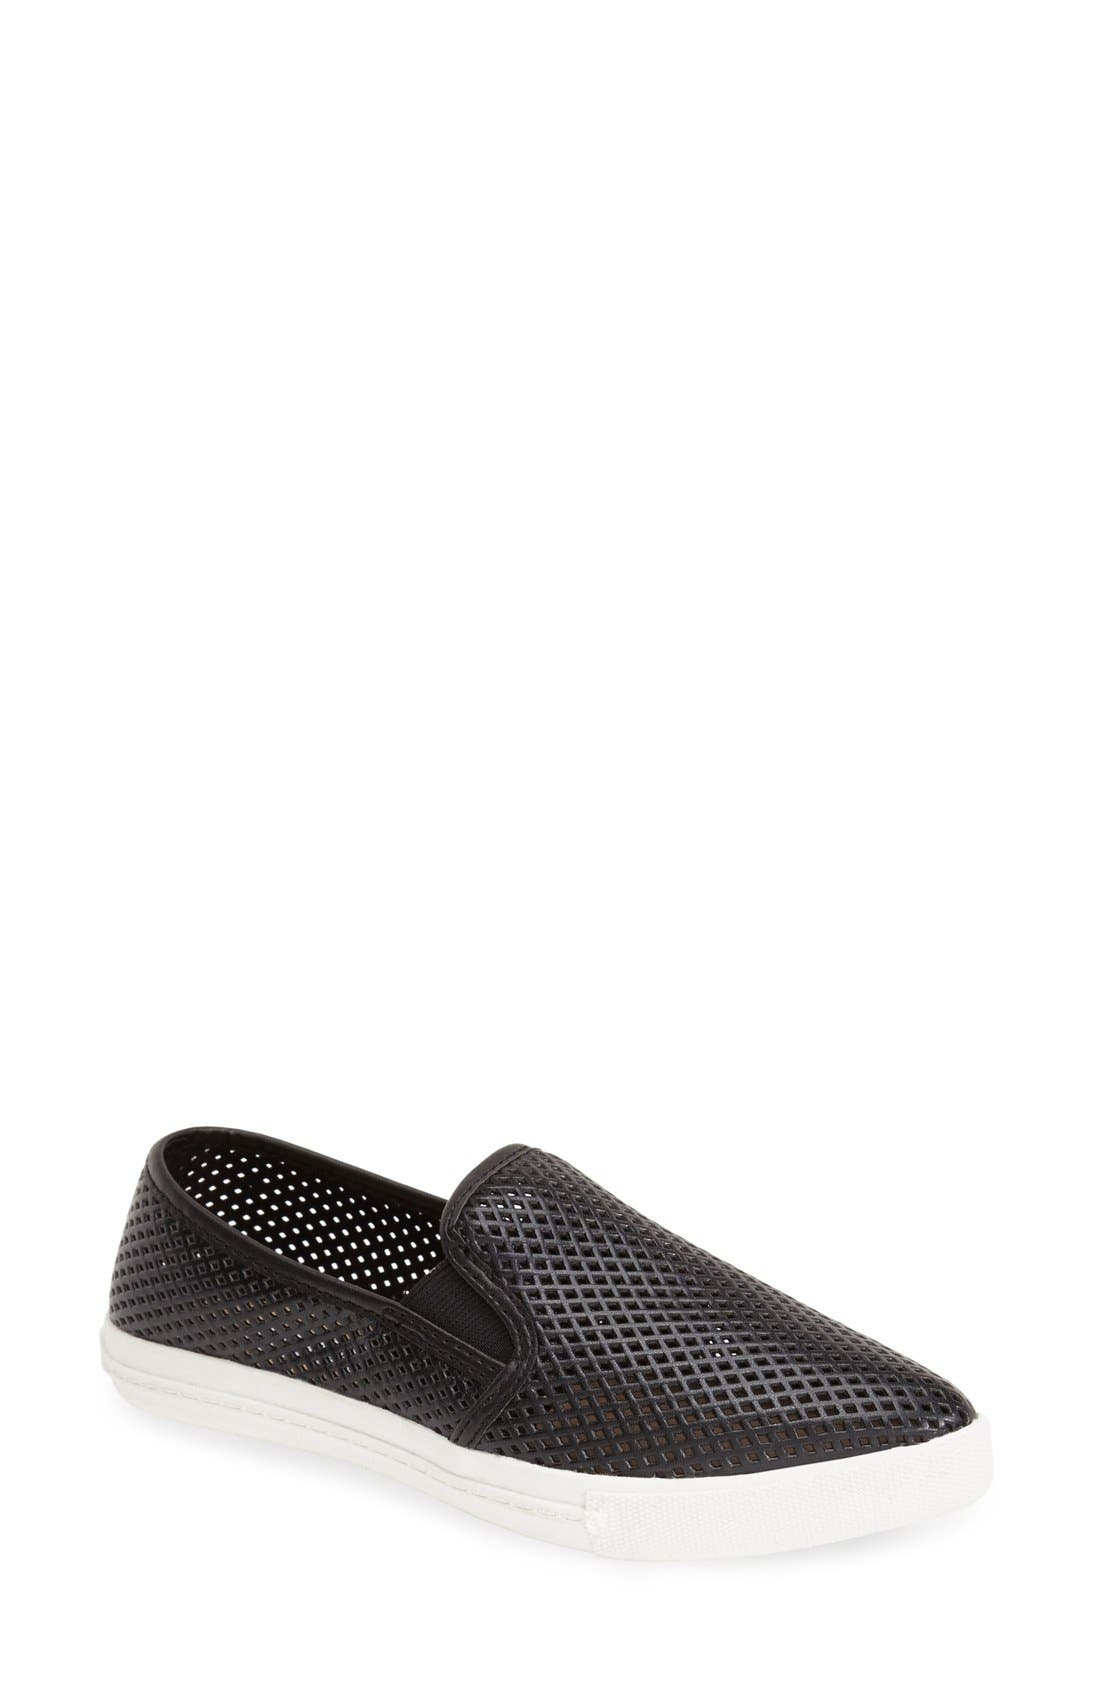 'Virggo' Perforated Slip-On Sneaker,                             Main thumbnail 1, color,                             005